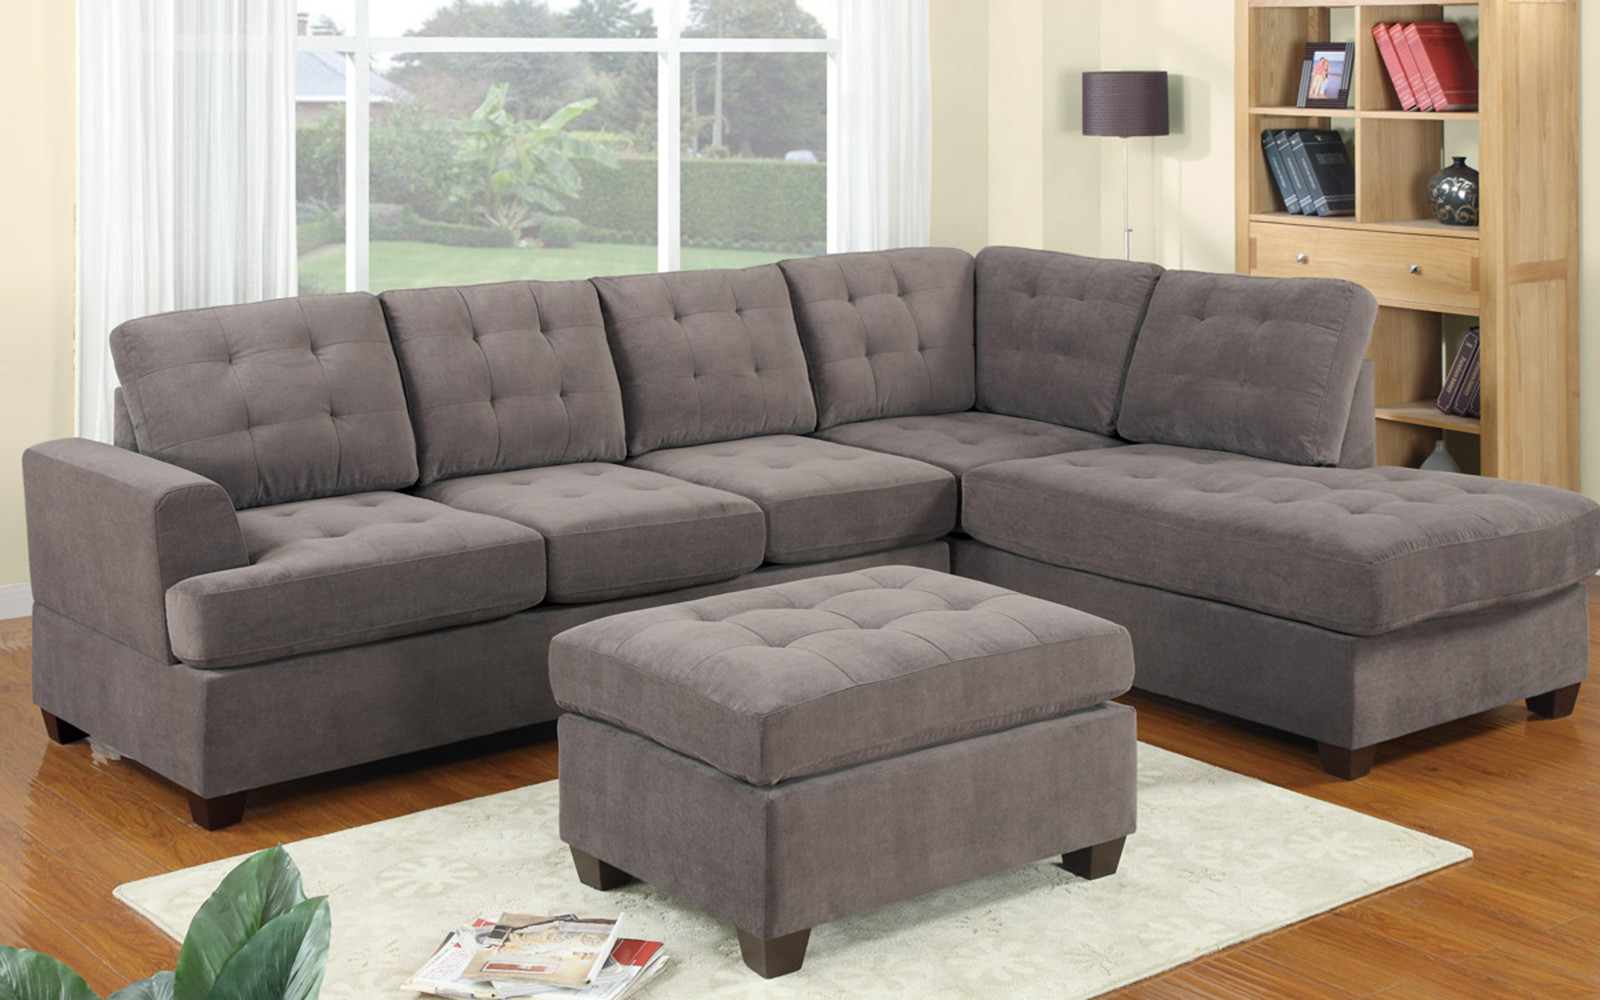 2 Piece Modern Reversible Grey Tufted Microfiber Sectional Sofa With Ottoman